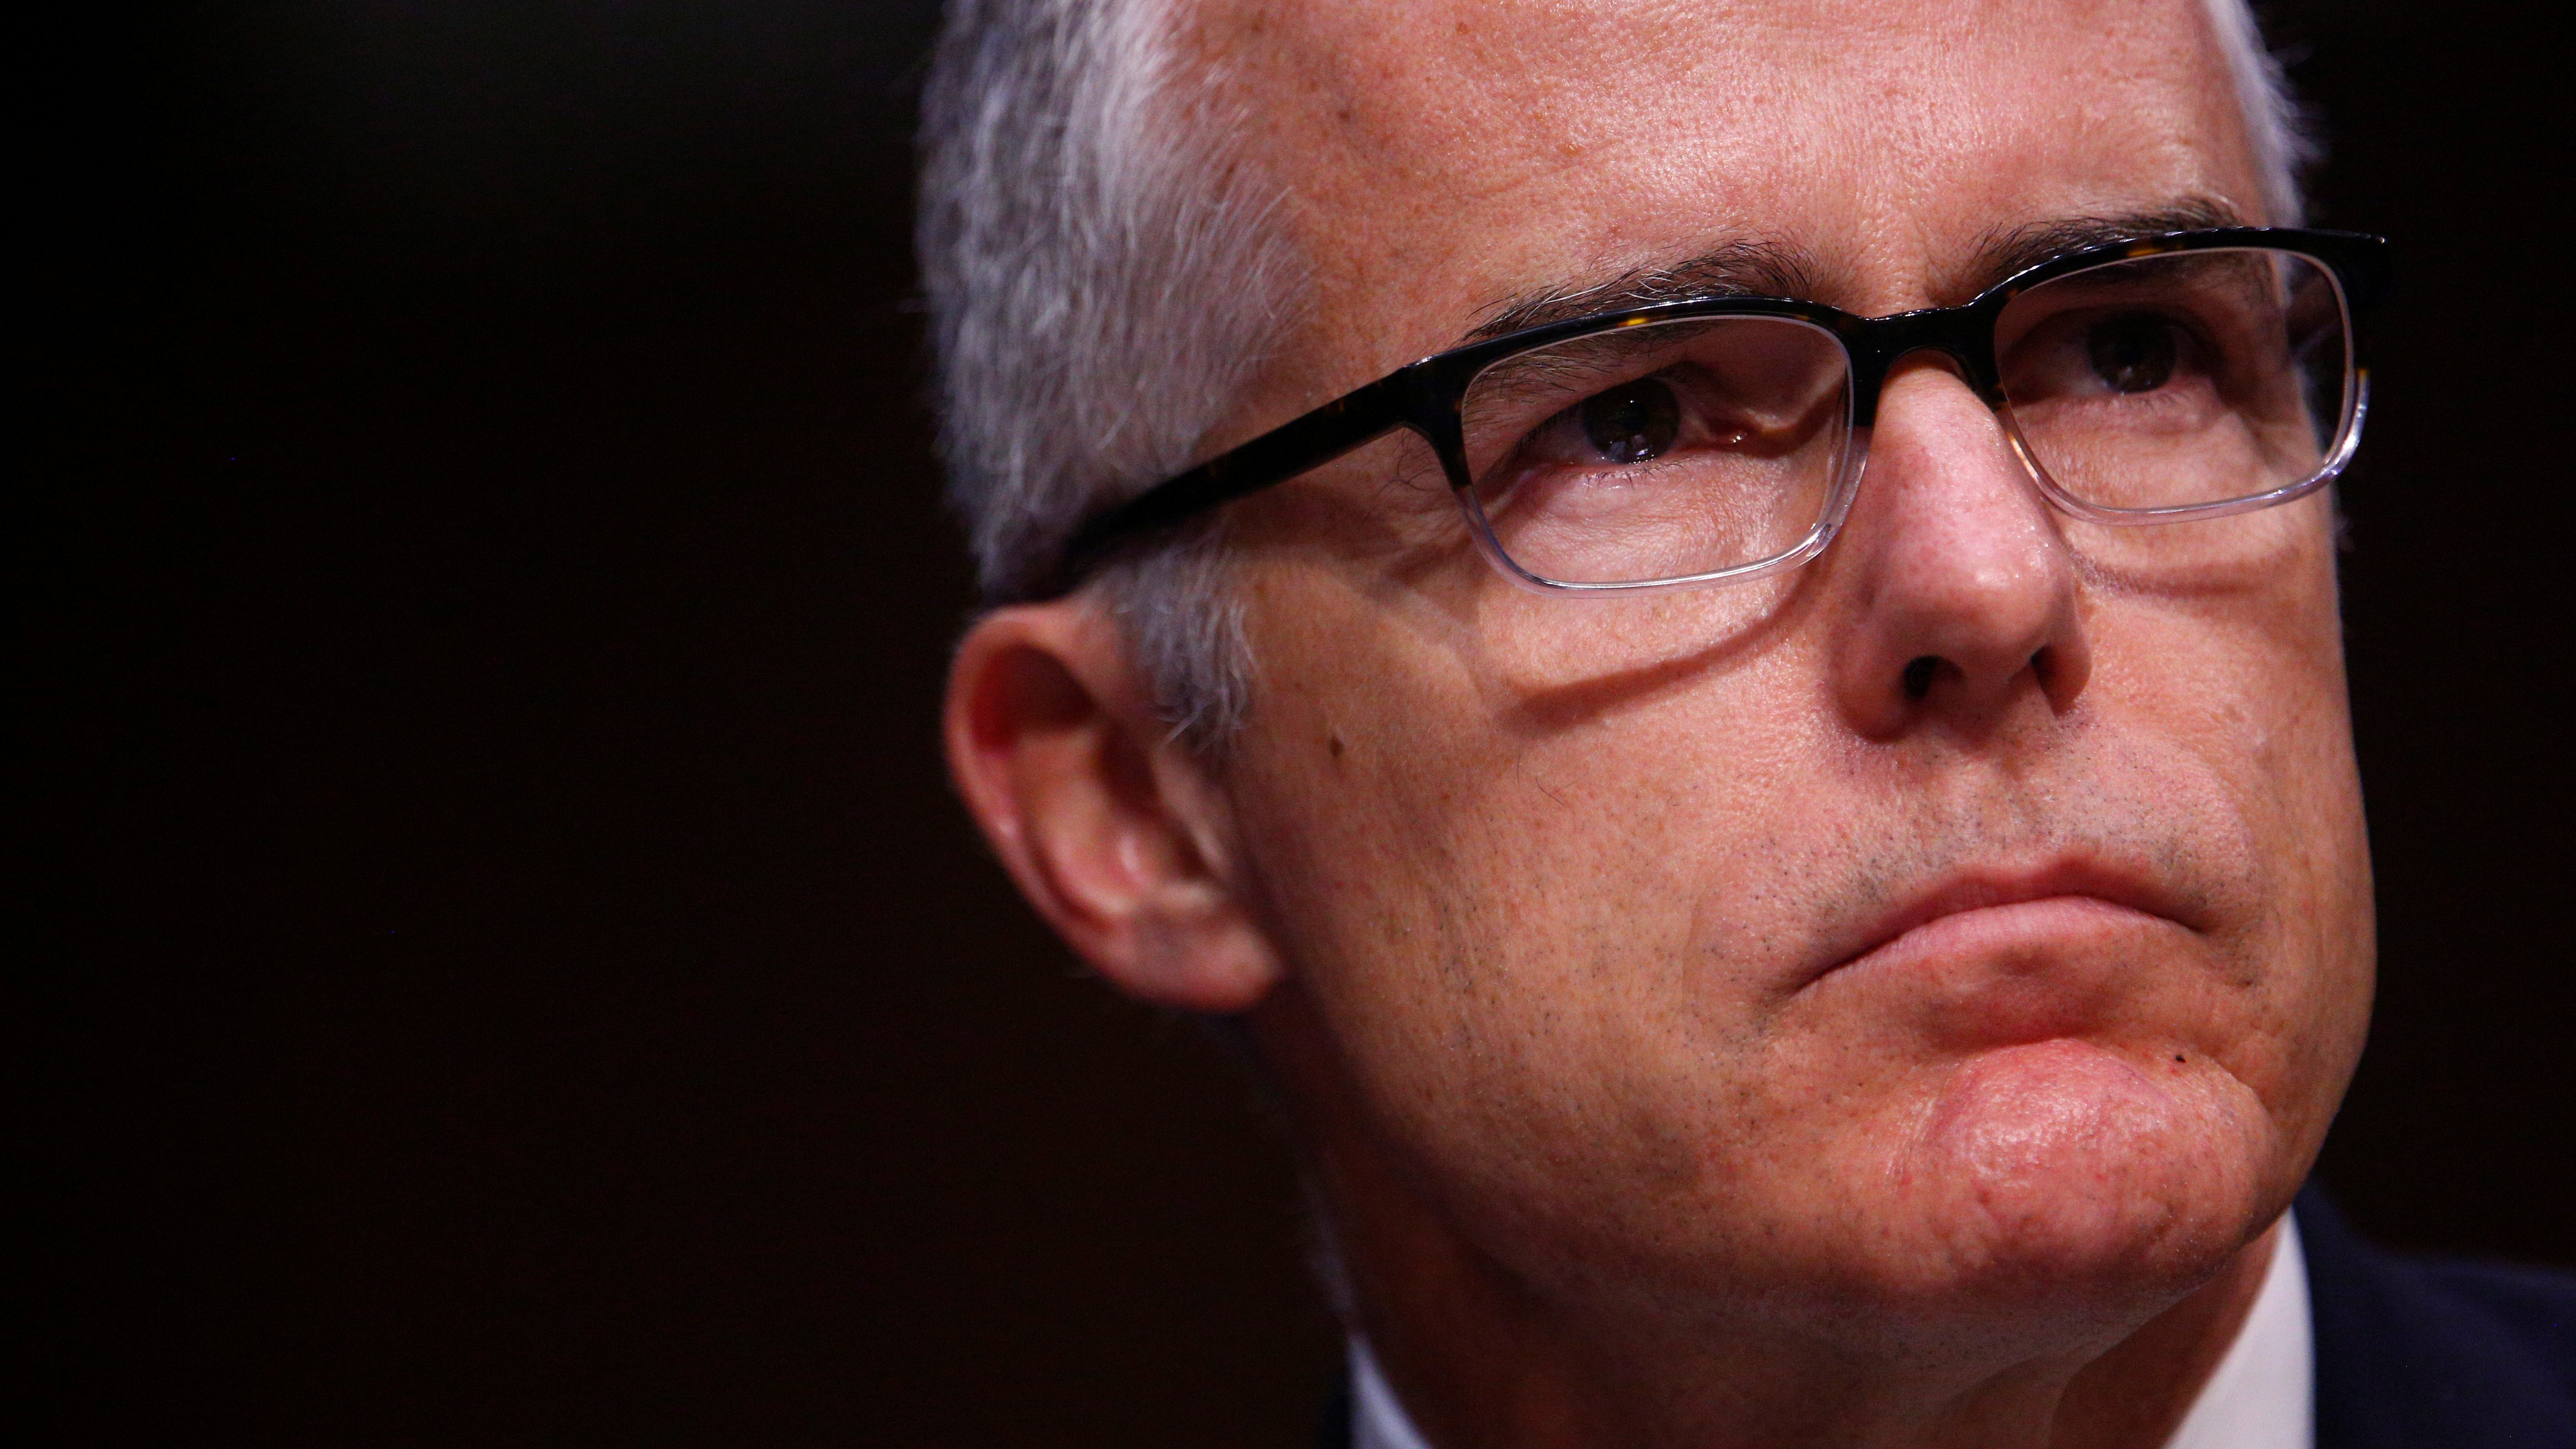 Acting FBI Director Andrew McCabe testifies before the U.S. Senate Select Committee on Intelligence on Capitol Hill in Washington, U.S. May 11, 2017. REUTERS/Eric Thayer - RTS167OE